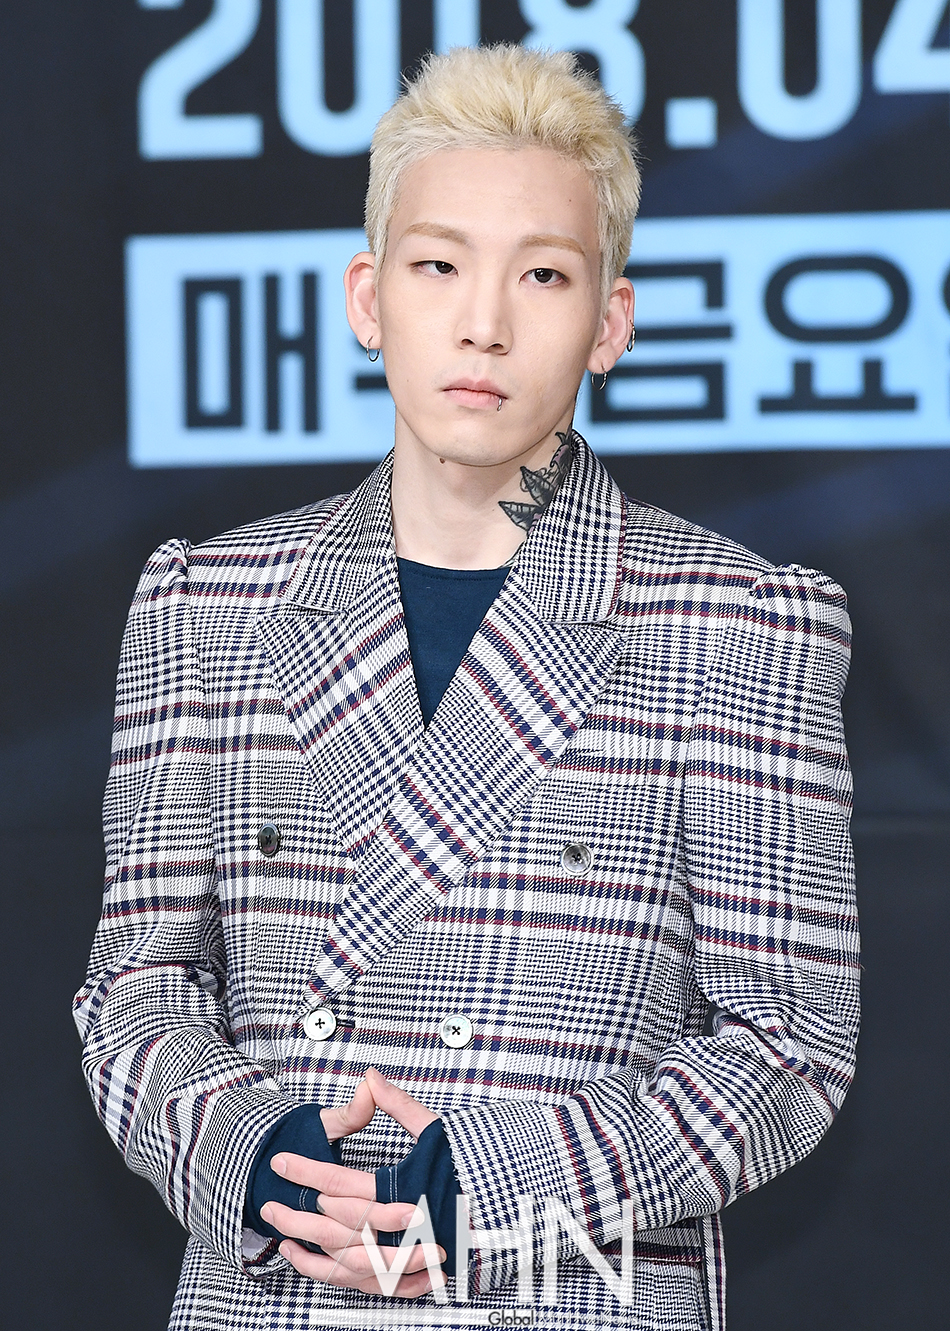 [MHN Photo] Seo Samuel 'Let me introduce myself on Music Battle - Breakers'